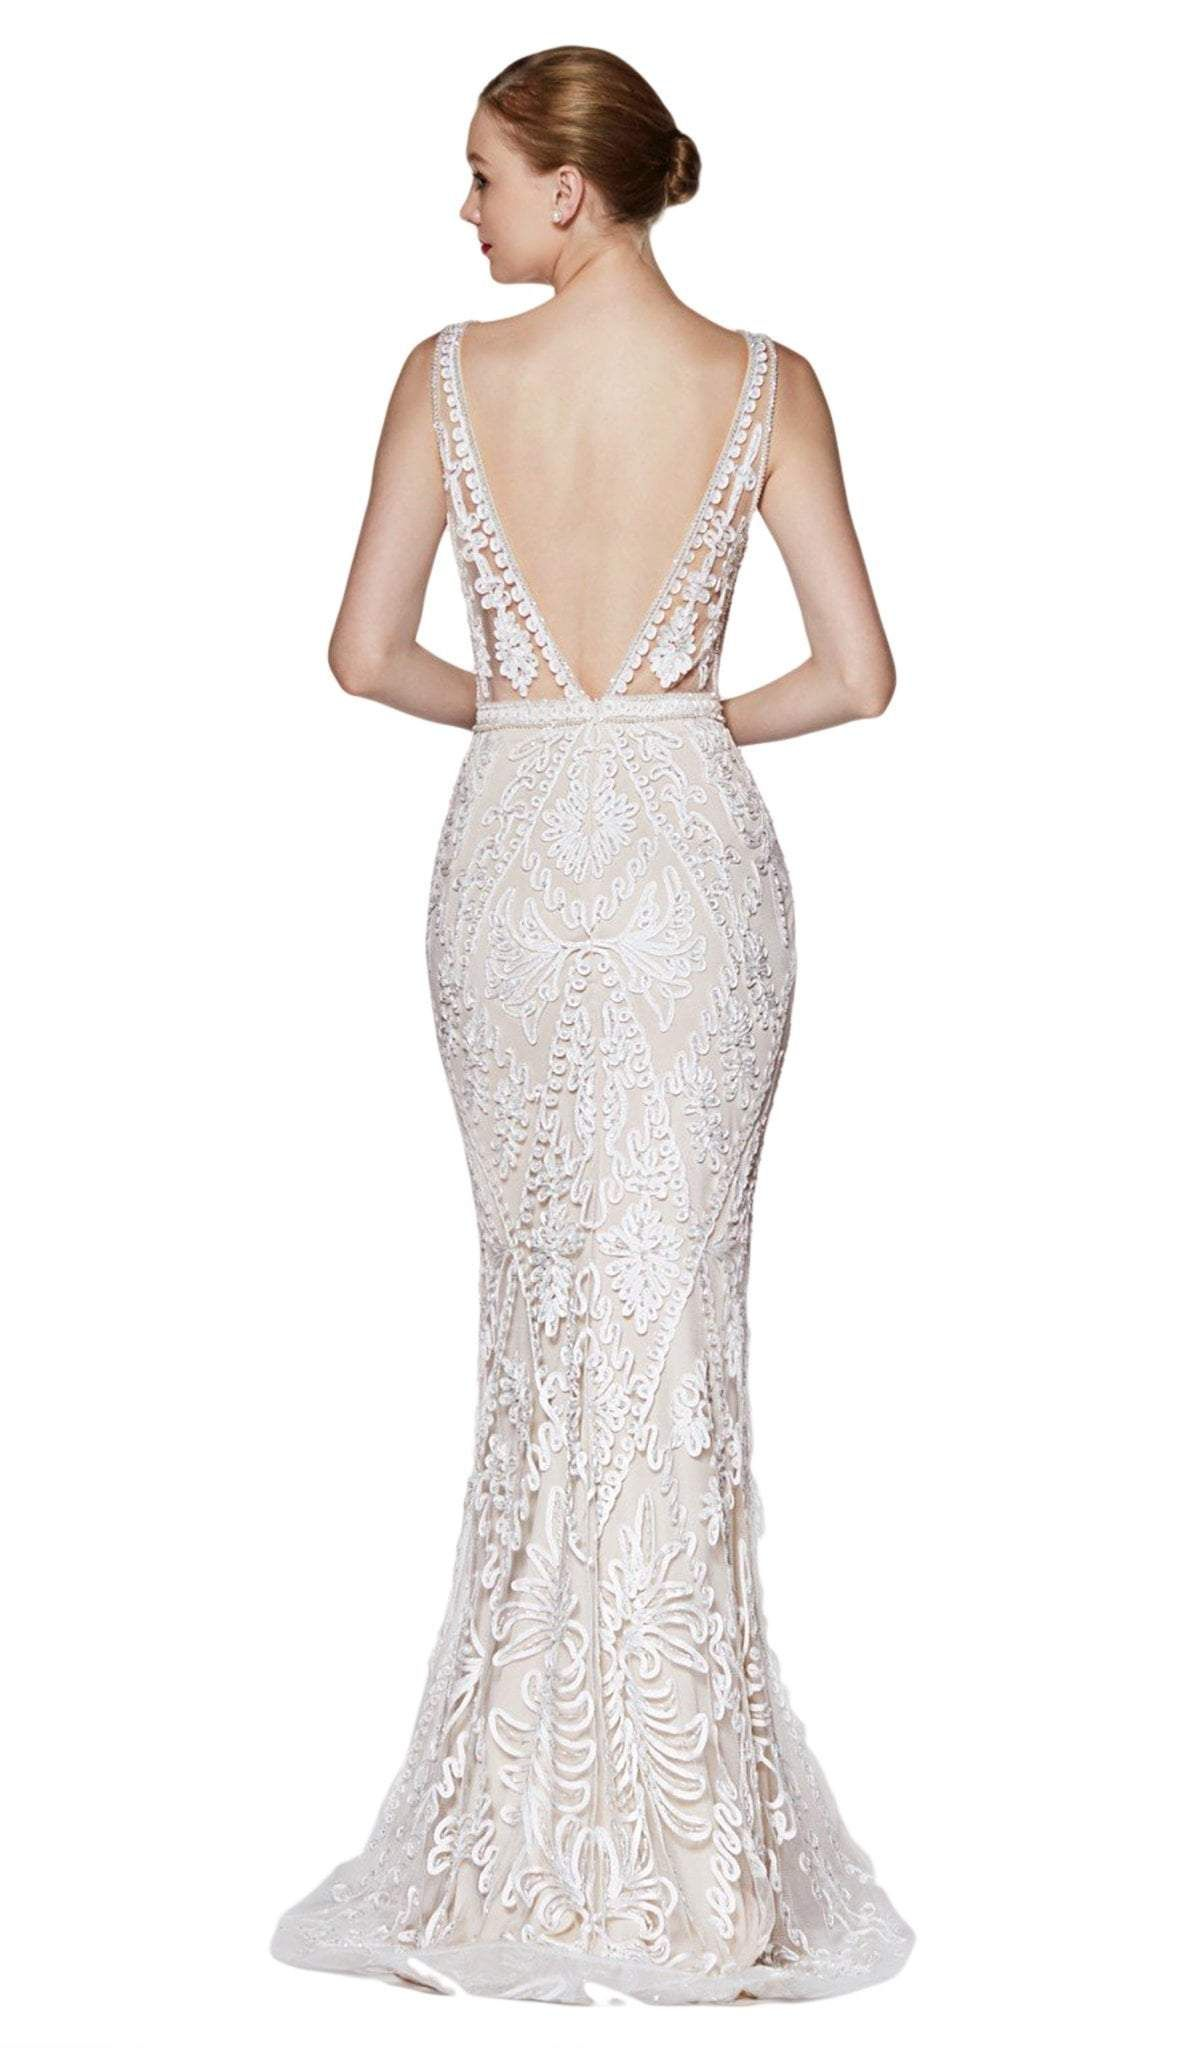 Cinderella Divine KC889 Evening Dress Prom Dress Fitted metallic gown with lace